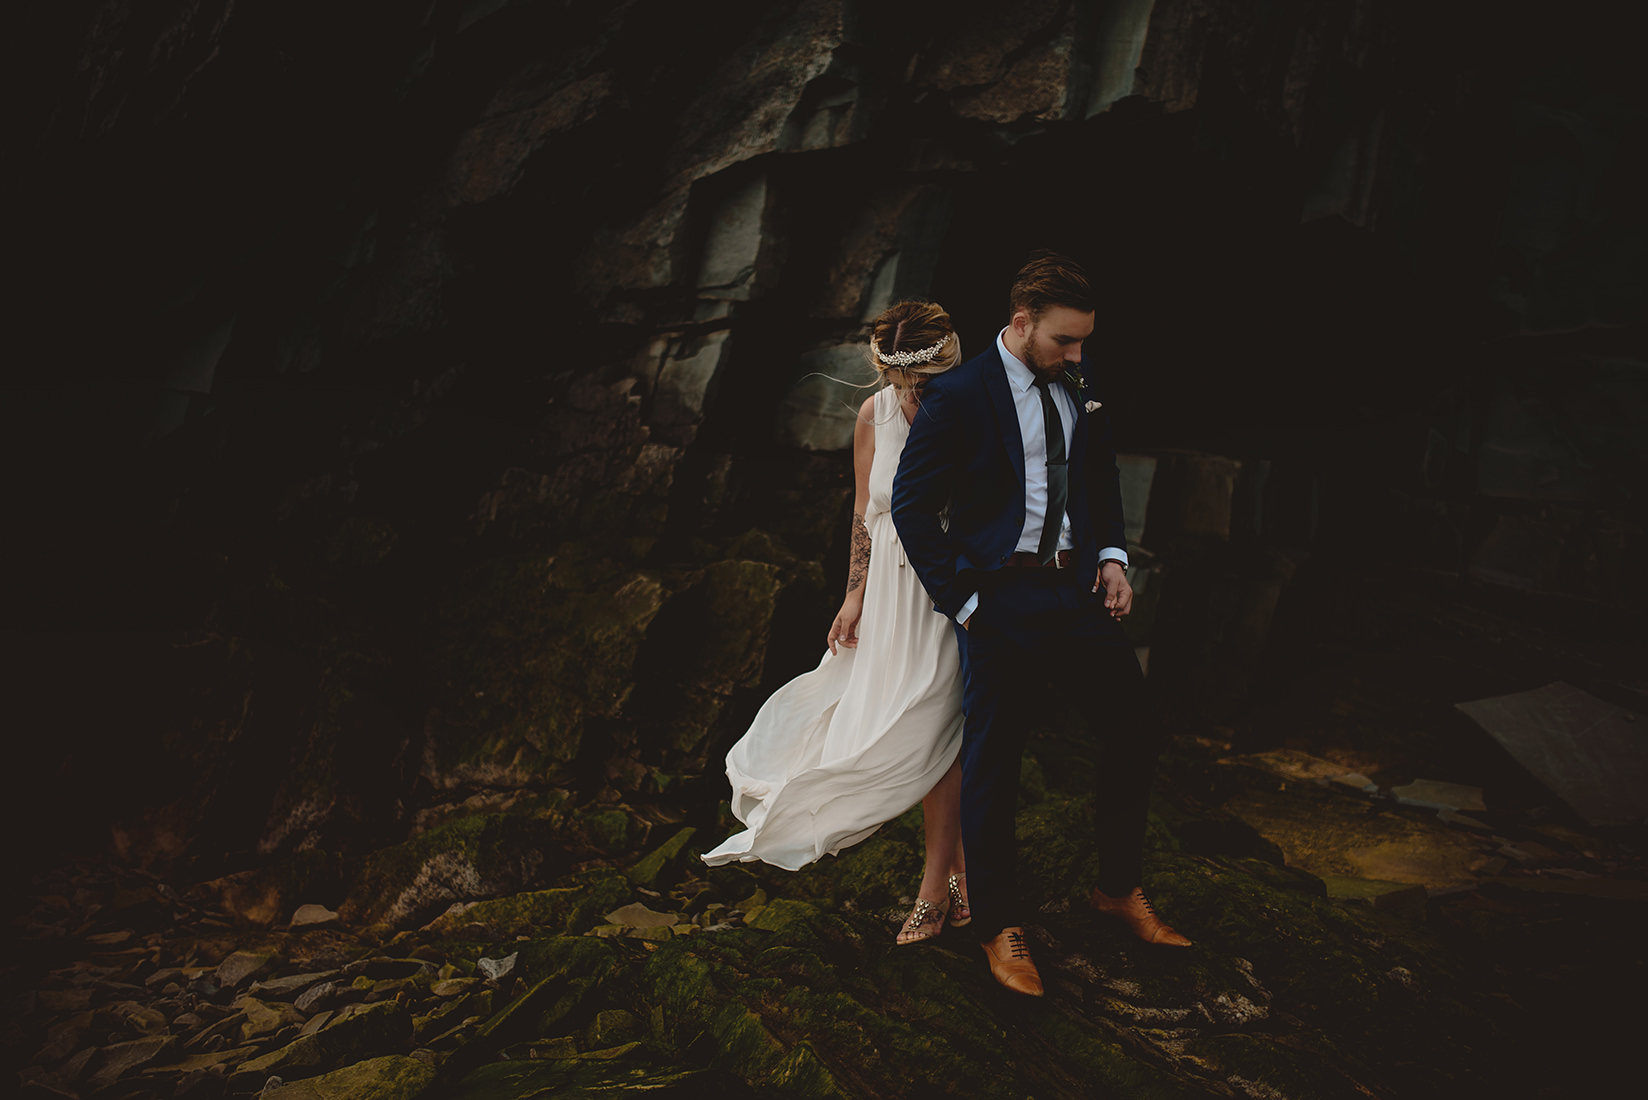 Calgary wedding photographers, Calgary wedding, wedding photography, destination wedding photographer, Iceland wedding, California wedding, New York wedding, wedding photographer, worlds best wedding, canon camera, ©Gabe McClintock Photography